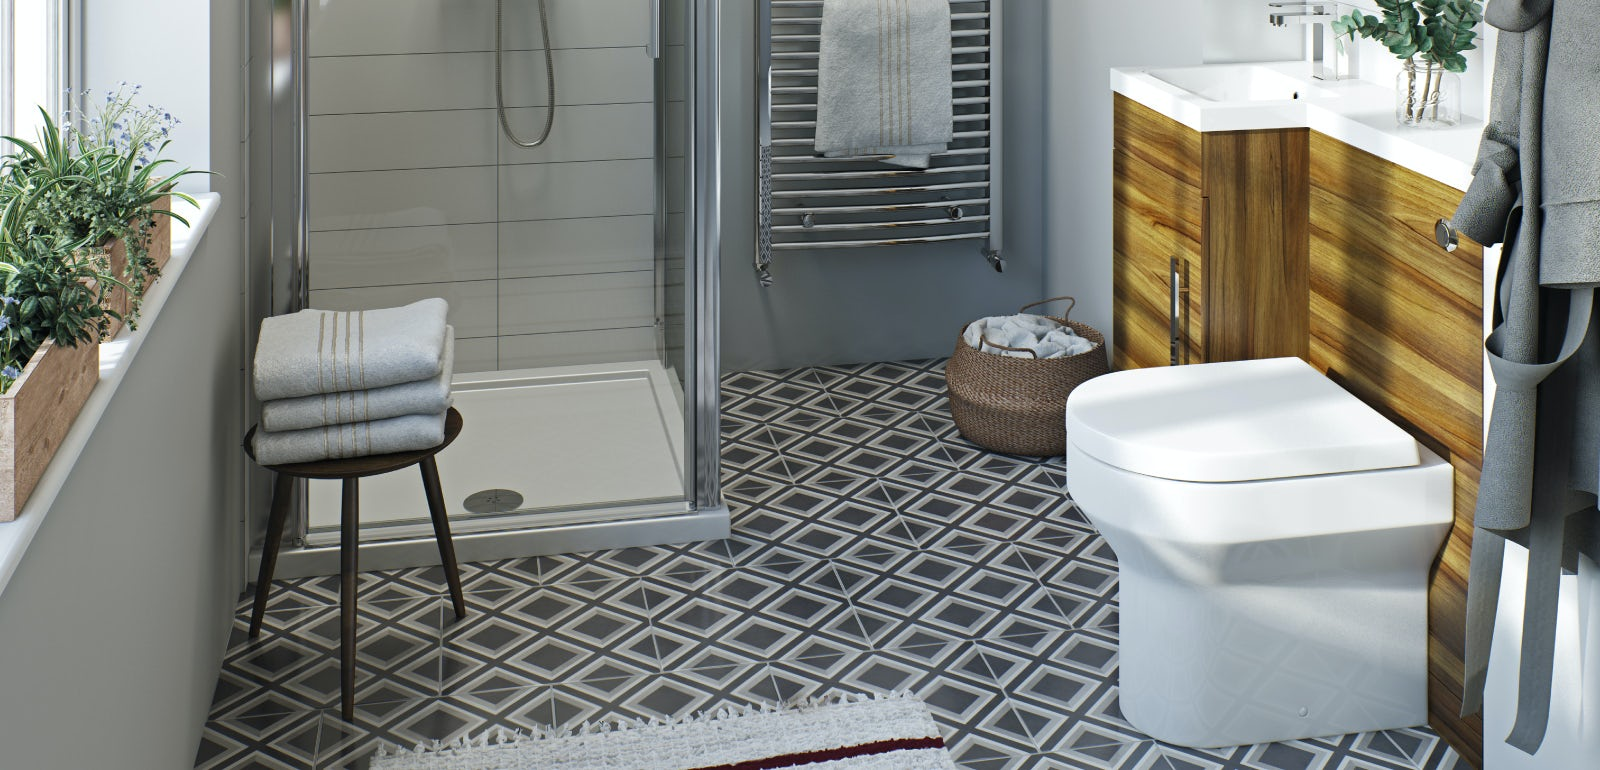 4 clever small toilet ideas